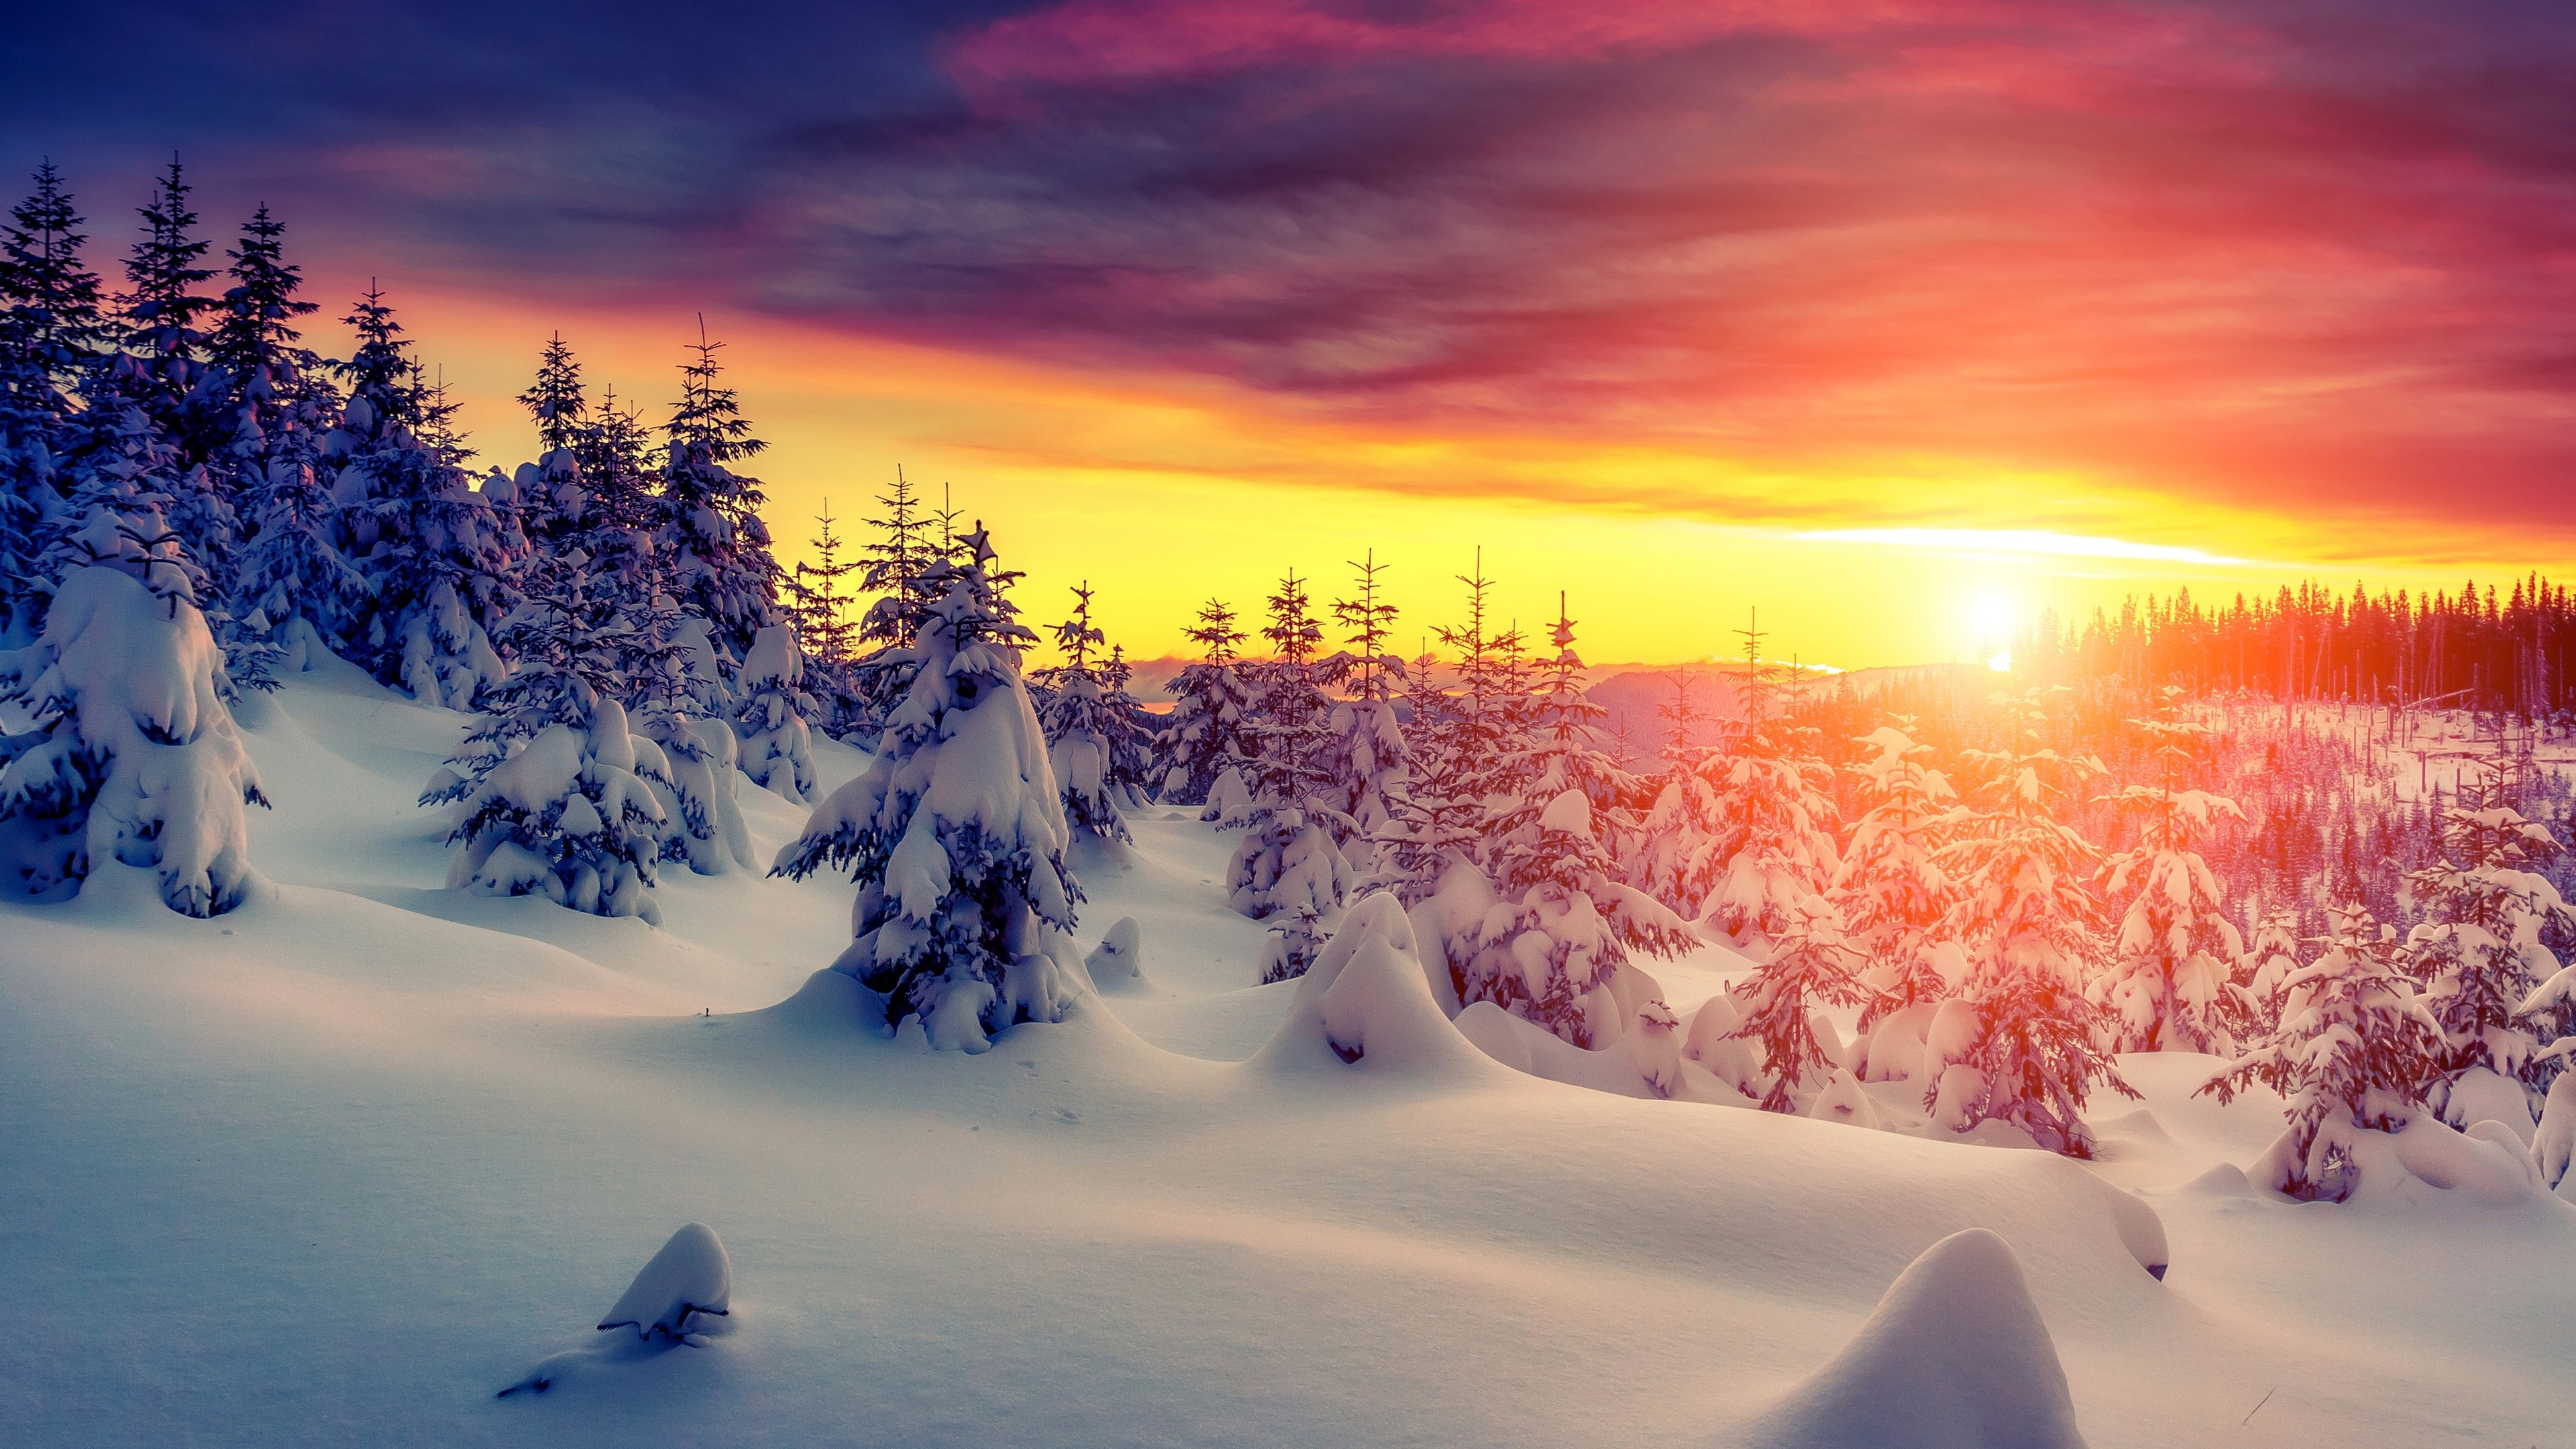 Winter Forest Sunset Sky Snow Wallpapers